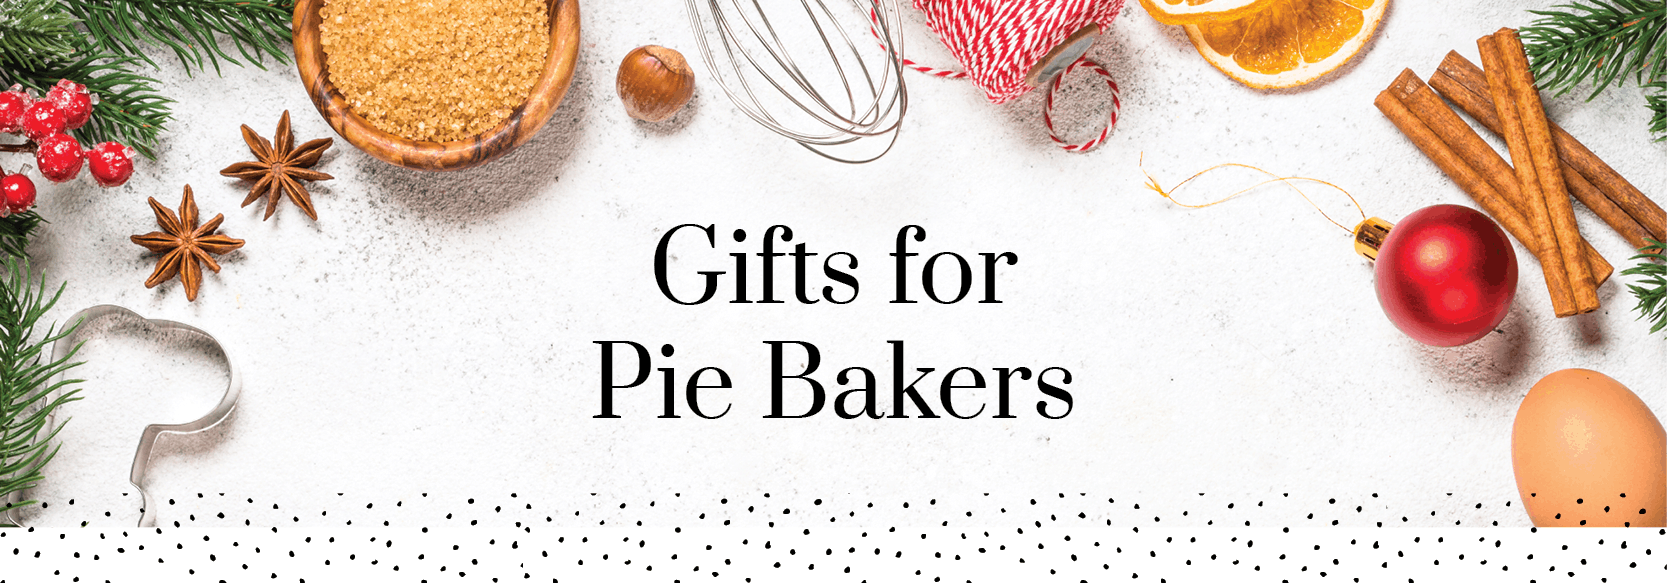 Gifts for Pie Bakers